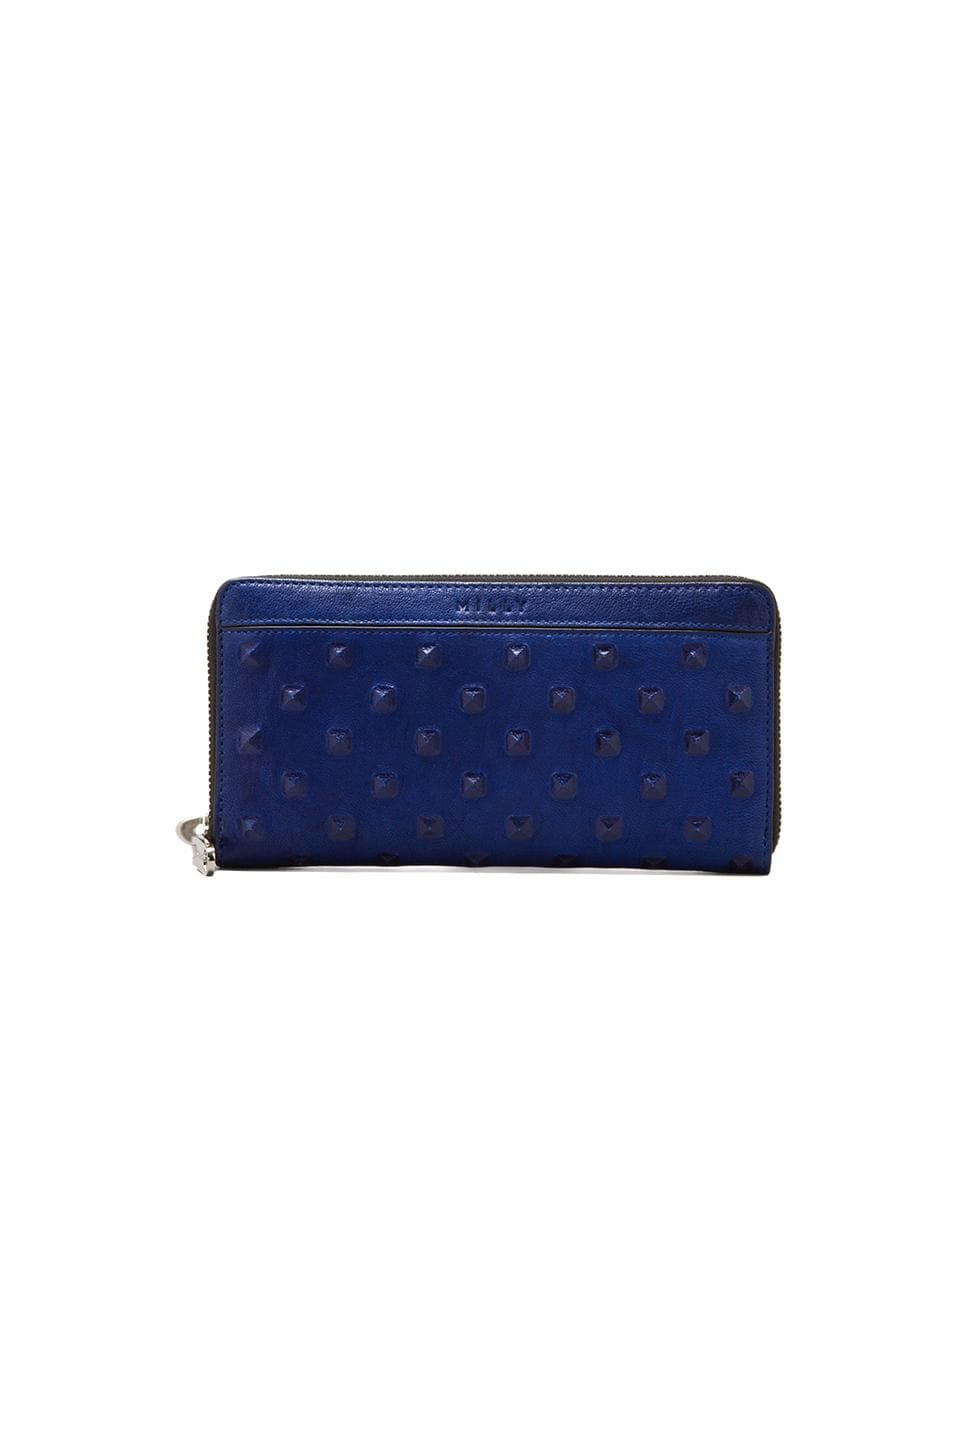 MILLY Perry Collection Zip Around Wallet in Blue